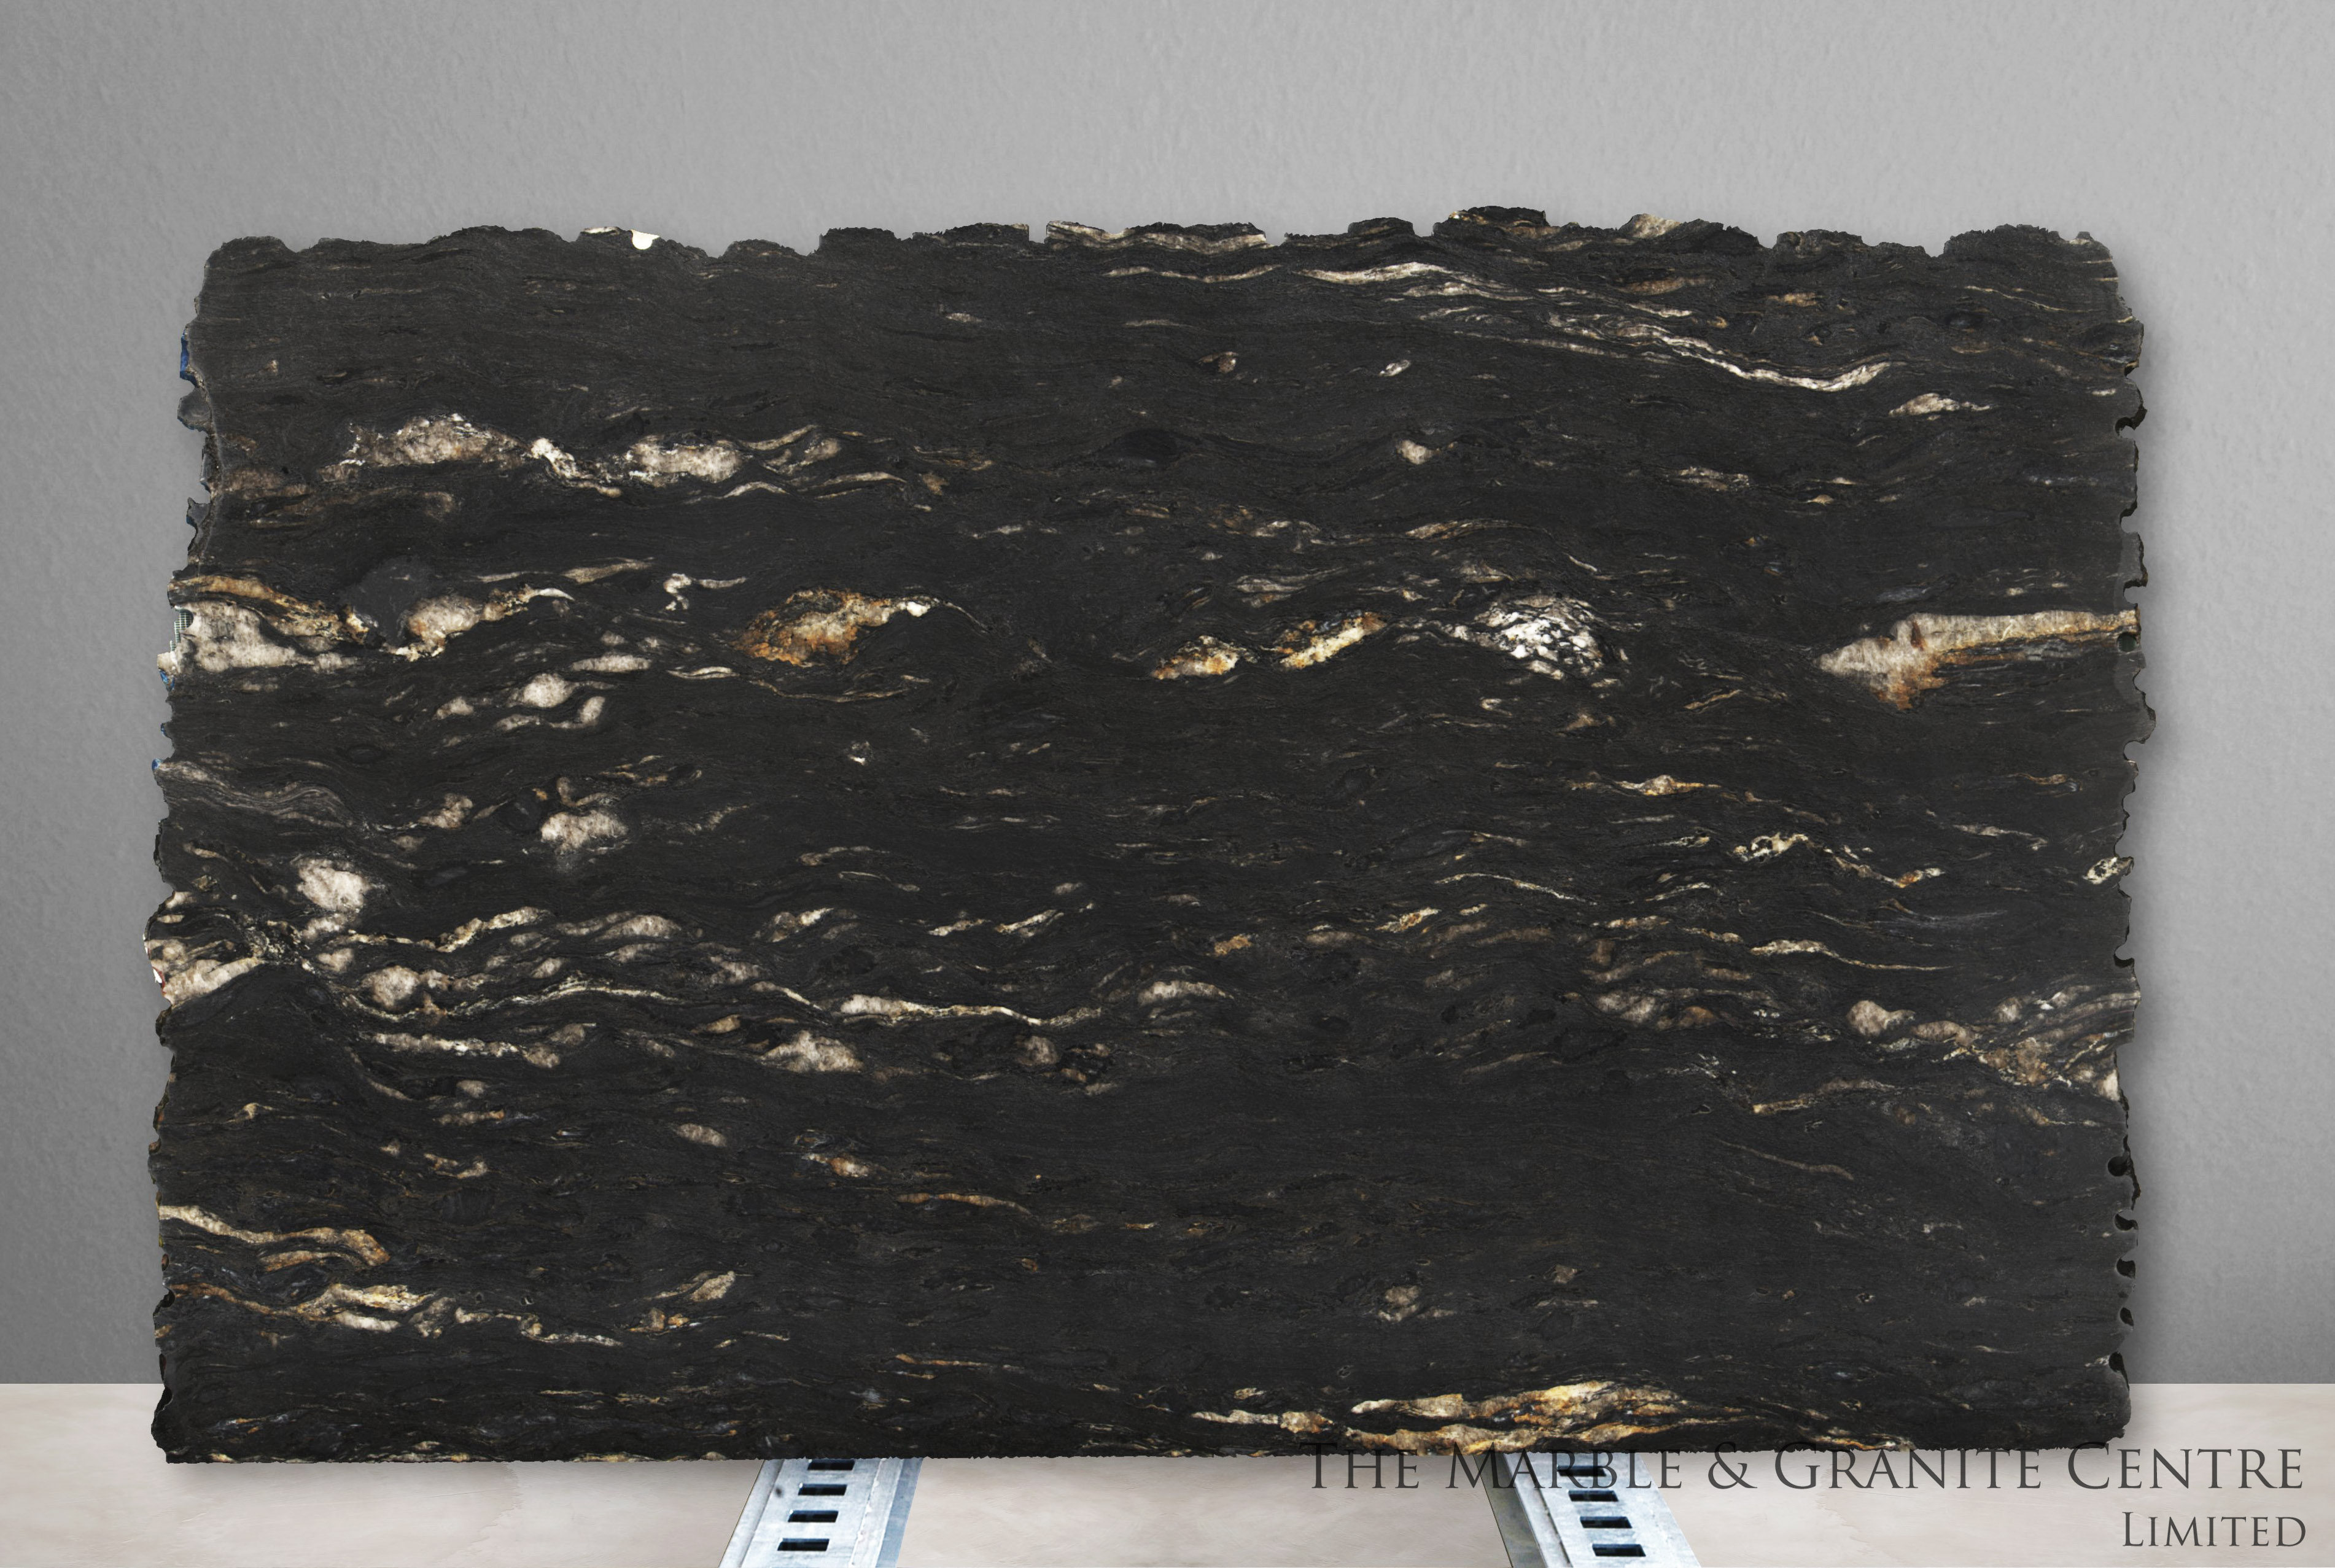 Granite Cosmic Black Satinato 30 mm [27999]